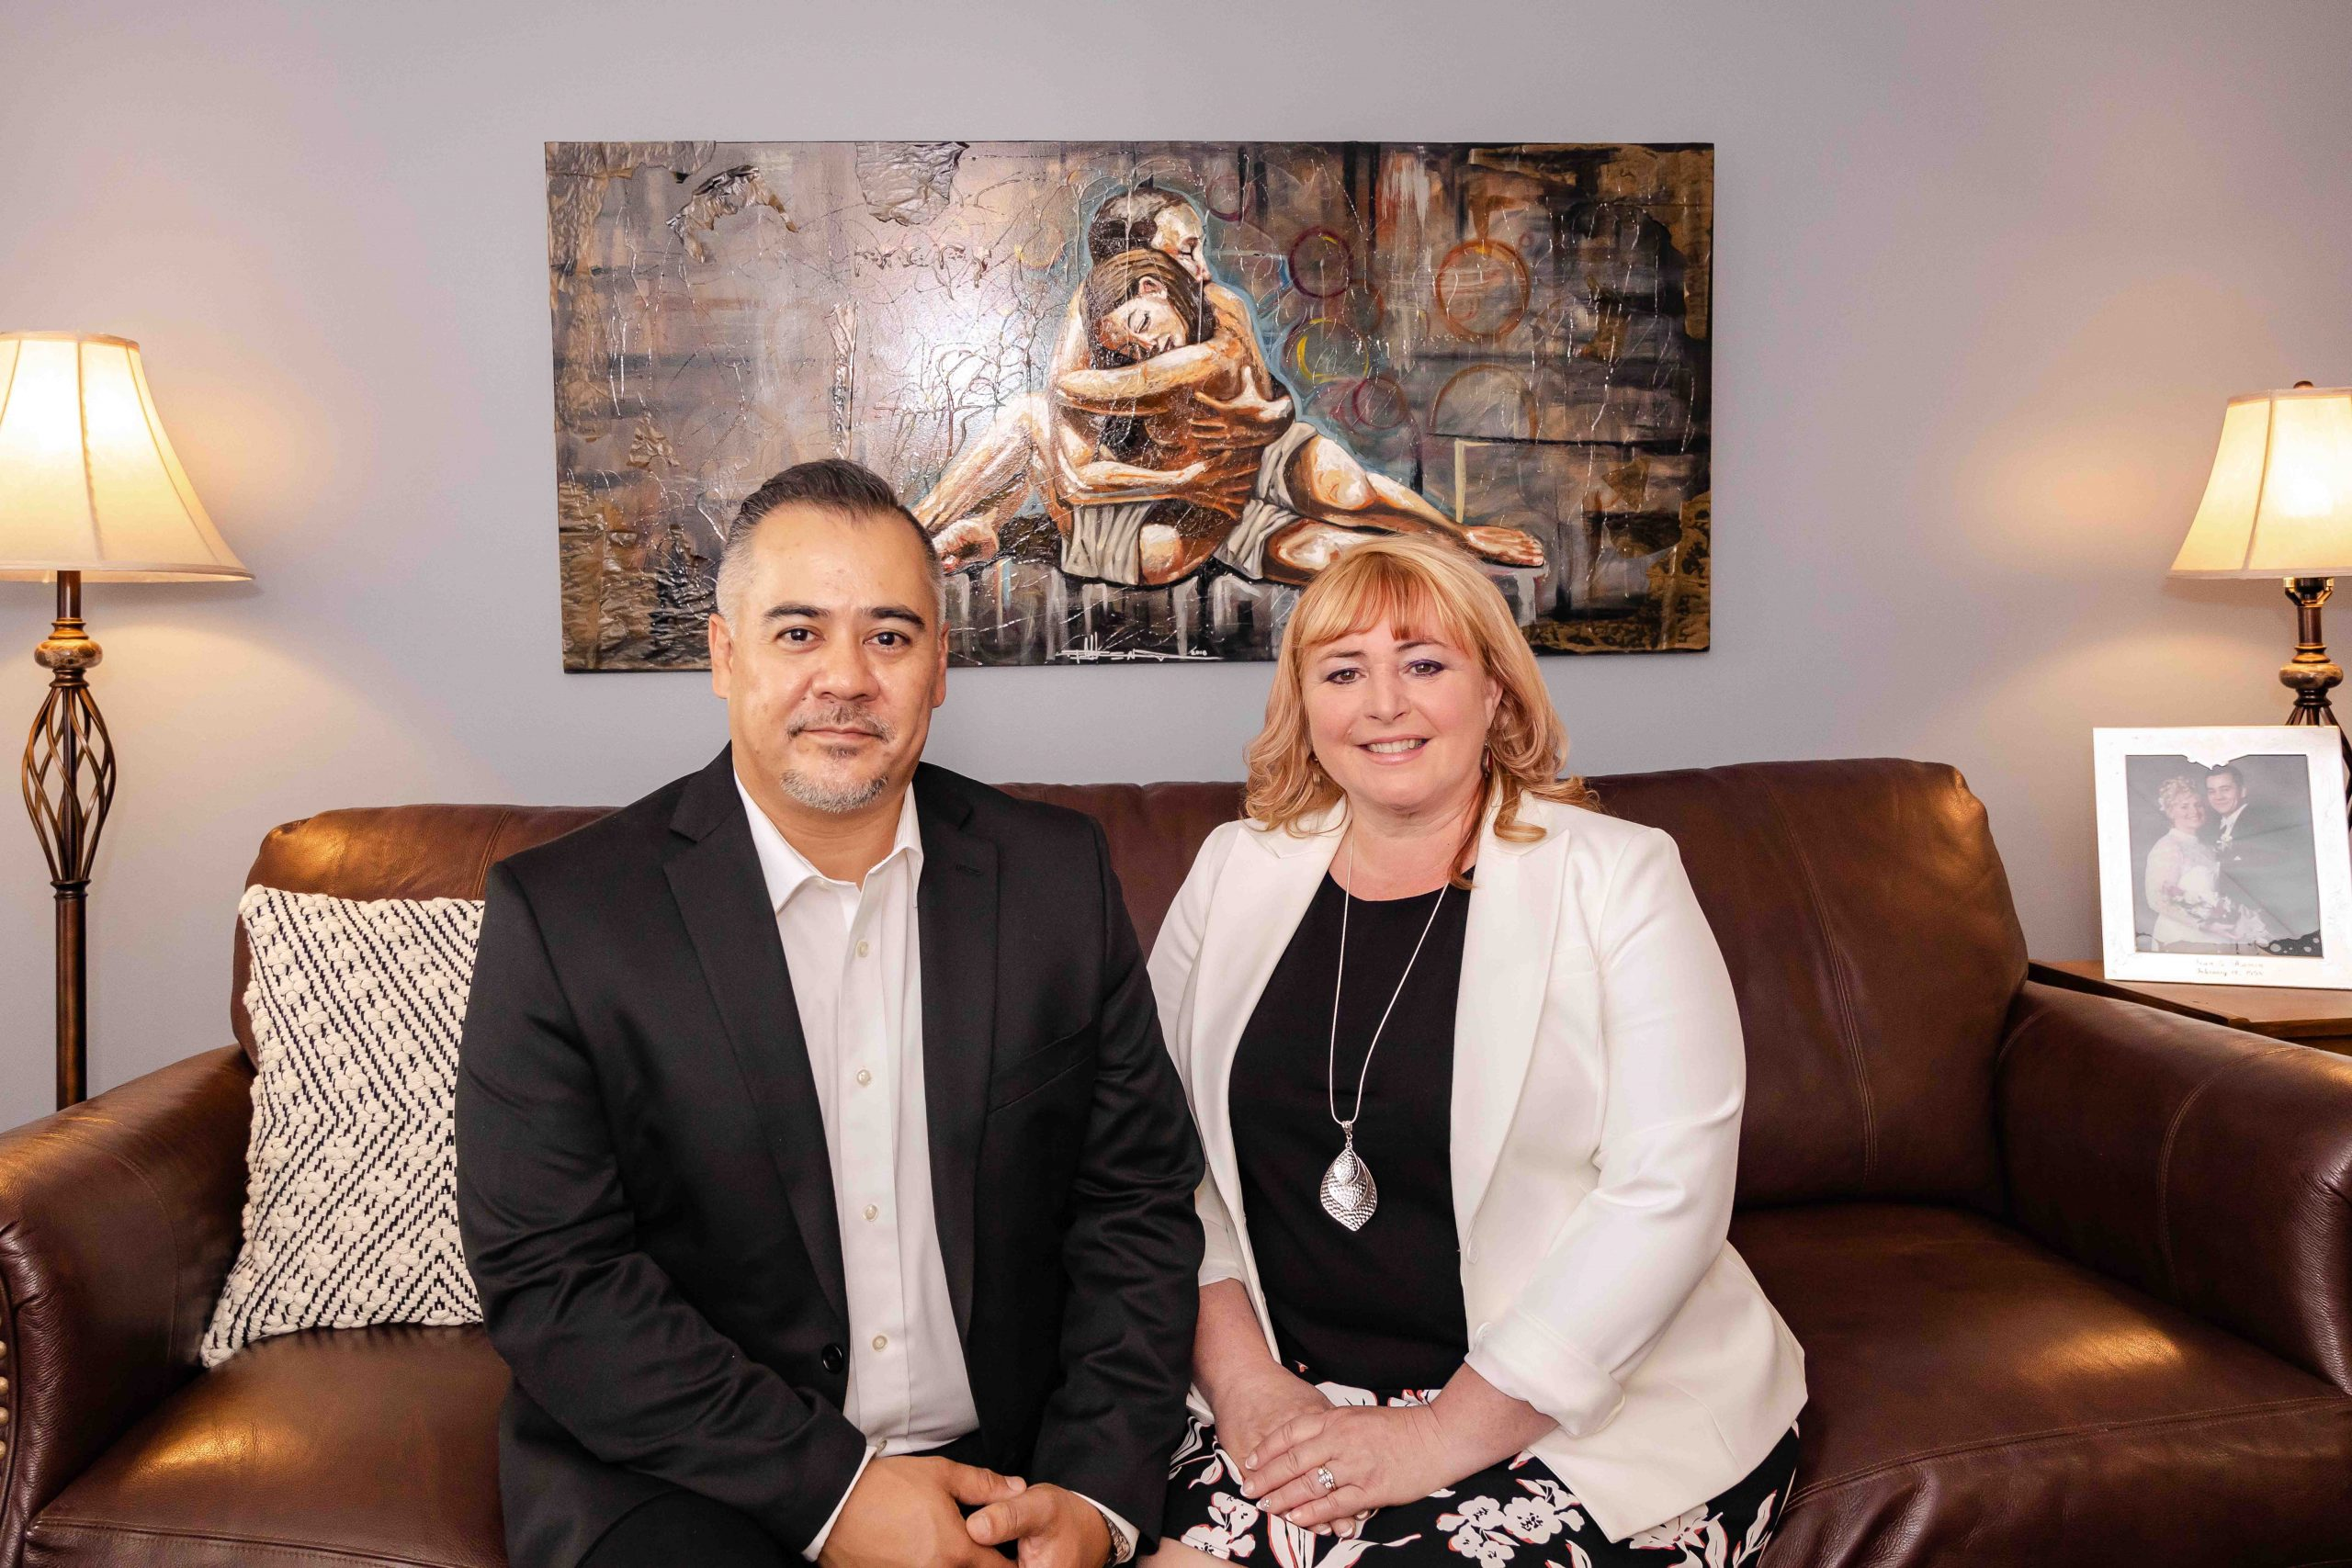 Dr Ray & Jean Kadkhodaian providing Counseling Services Schaumburg IL